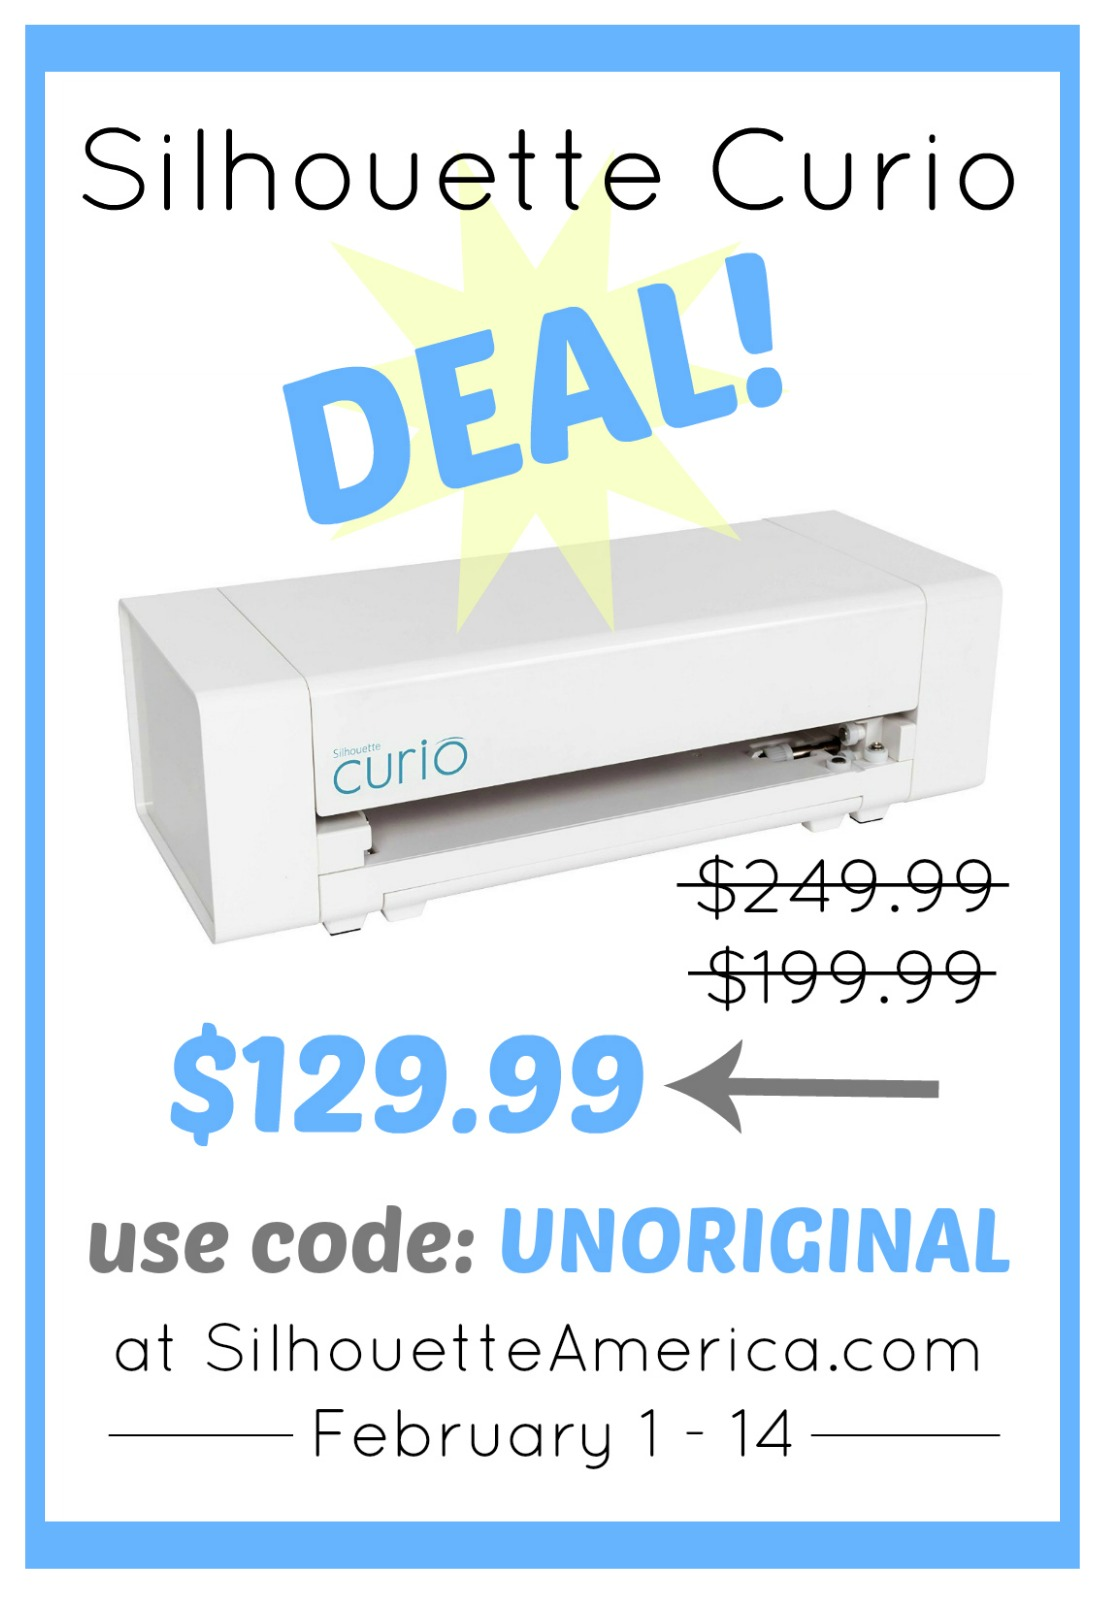 Amazing deal on the Silhouette Curio - grab it for almost 50% off when you use the code UNORIGINAL!